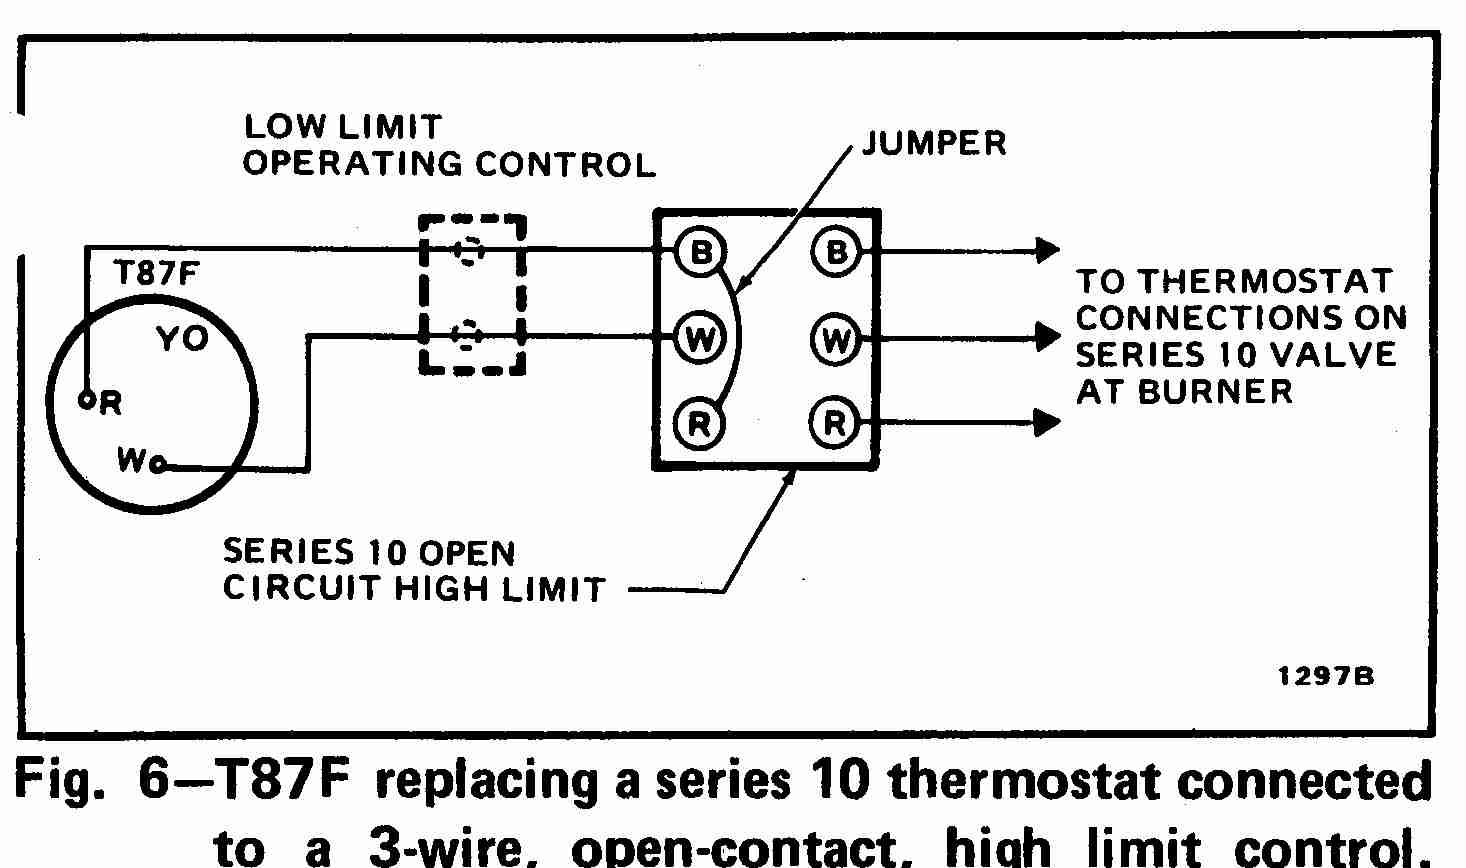 Thermostat Wiring Diagram Honeywell Furnace Colors Room Diagrams For Hvac Systems Digital